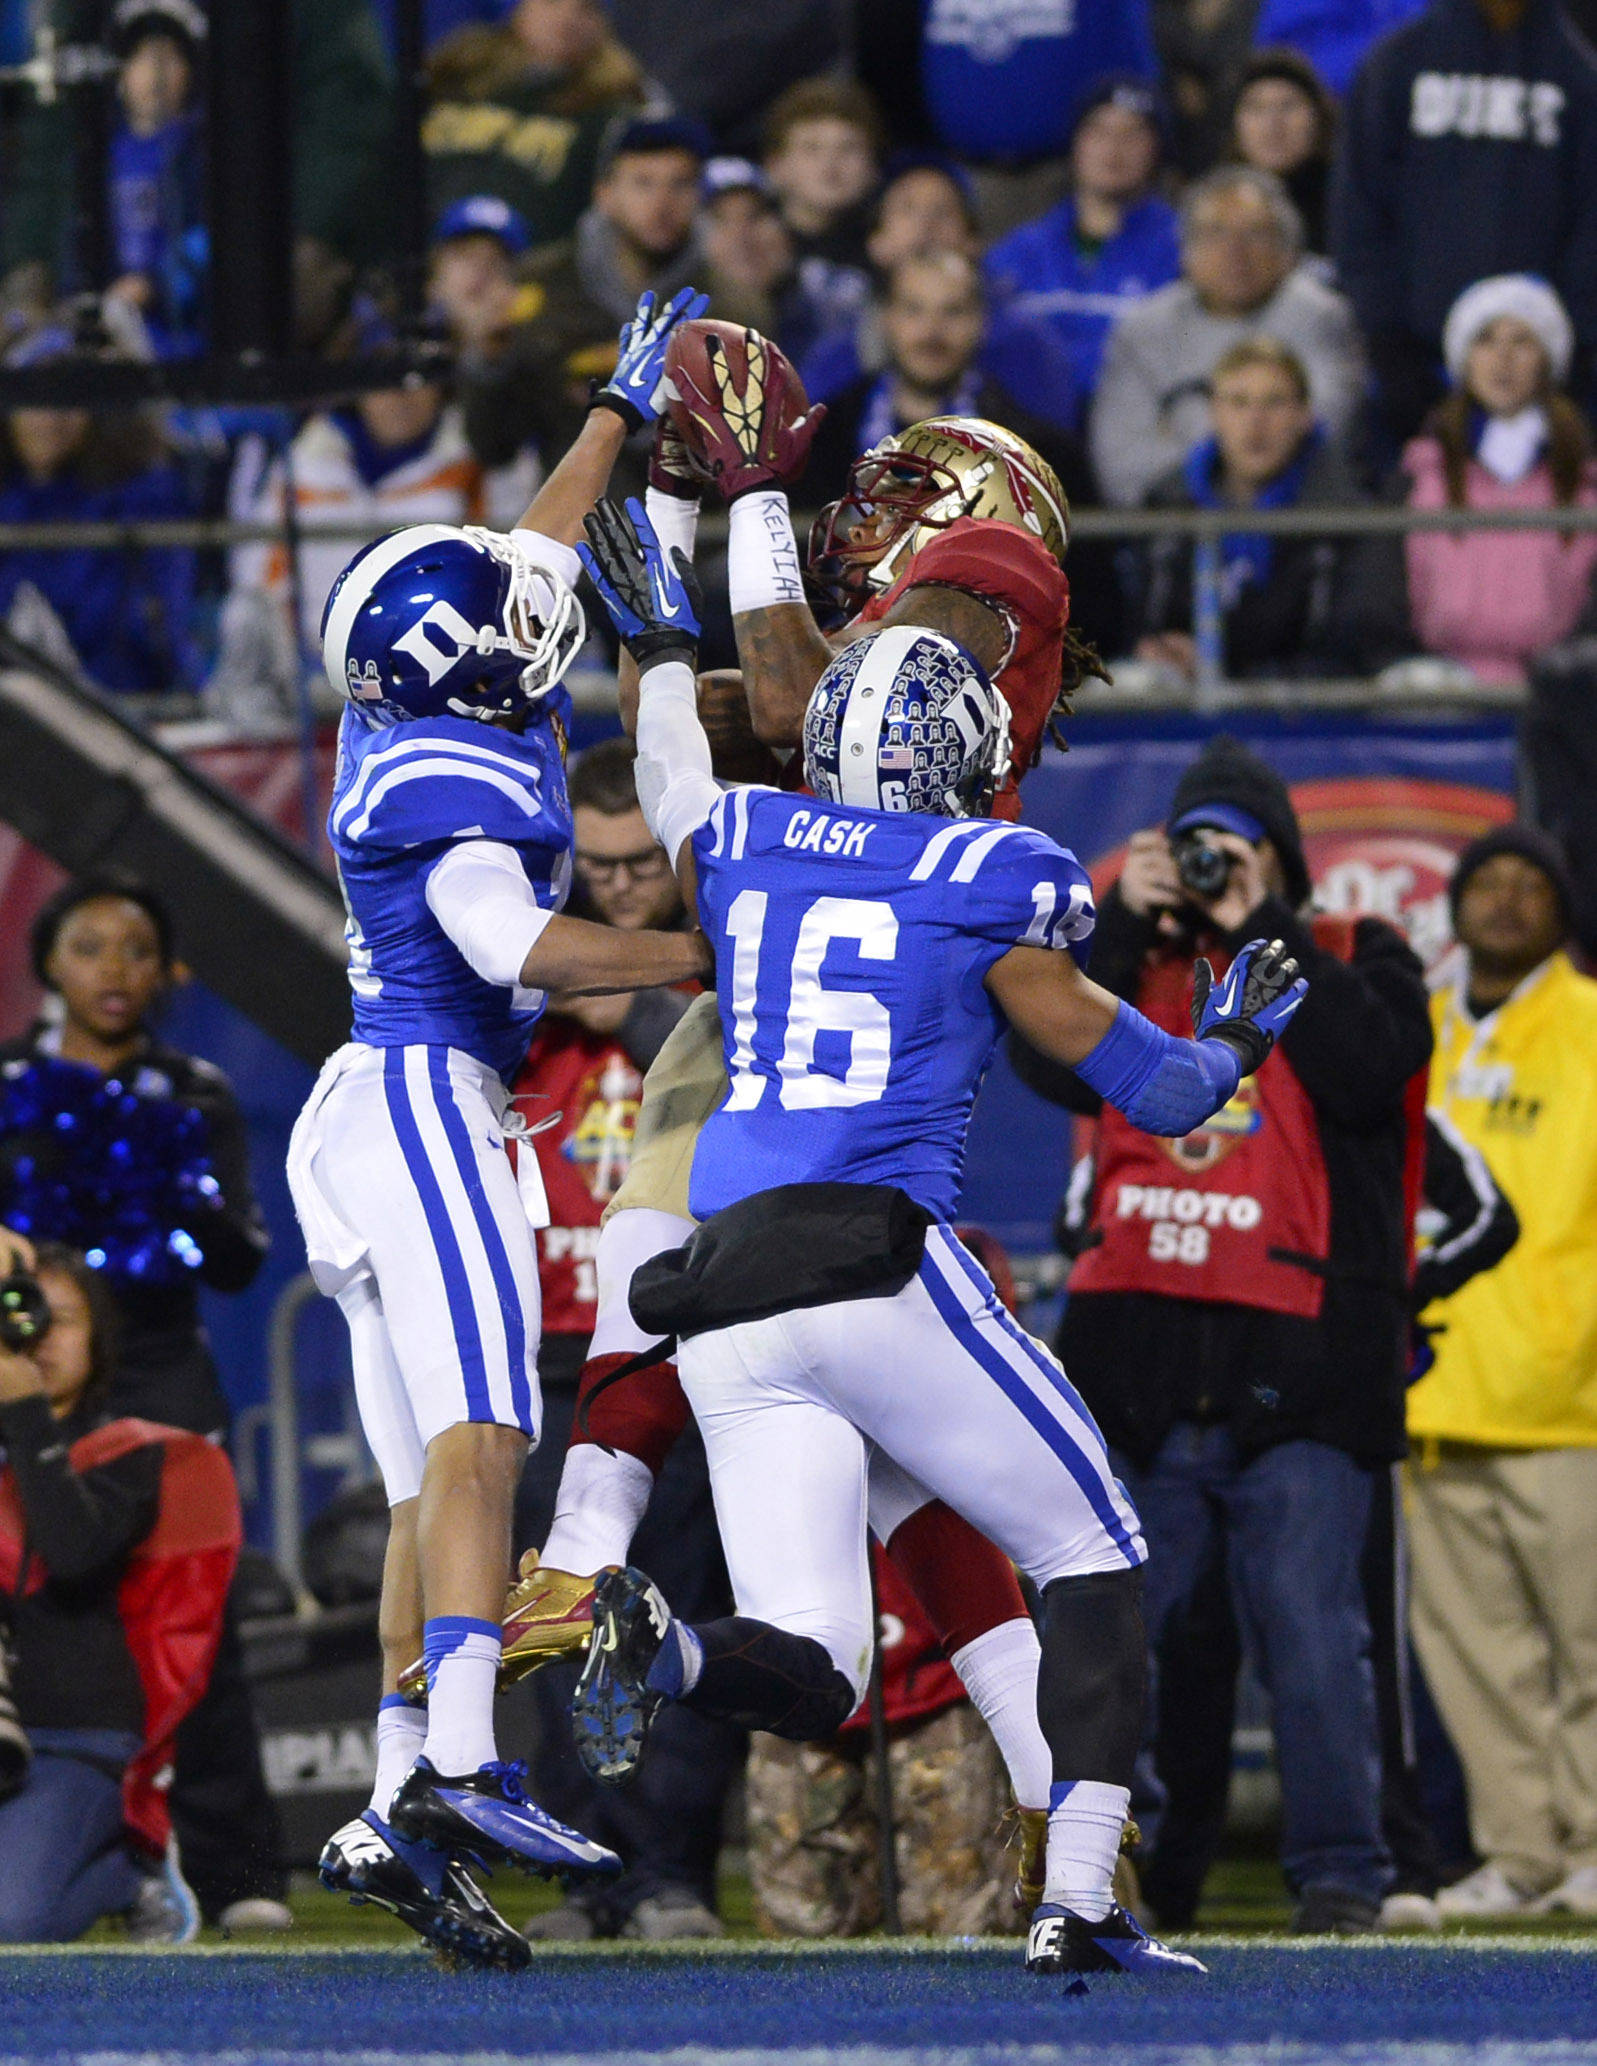 Dec 7, 2013; Charlotte, NC, USA; Florida State Seminoles wide receiver Kelvin Benjamin (1) catches a touchdown pass as Duke Blue Devils cornerback Bryon Fields (14) and safety Jeremy Cash (16) defend in the second quarter at Bank of America Stadium. Mandatory Credit: Bob Donnan-USA TODAY Sports